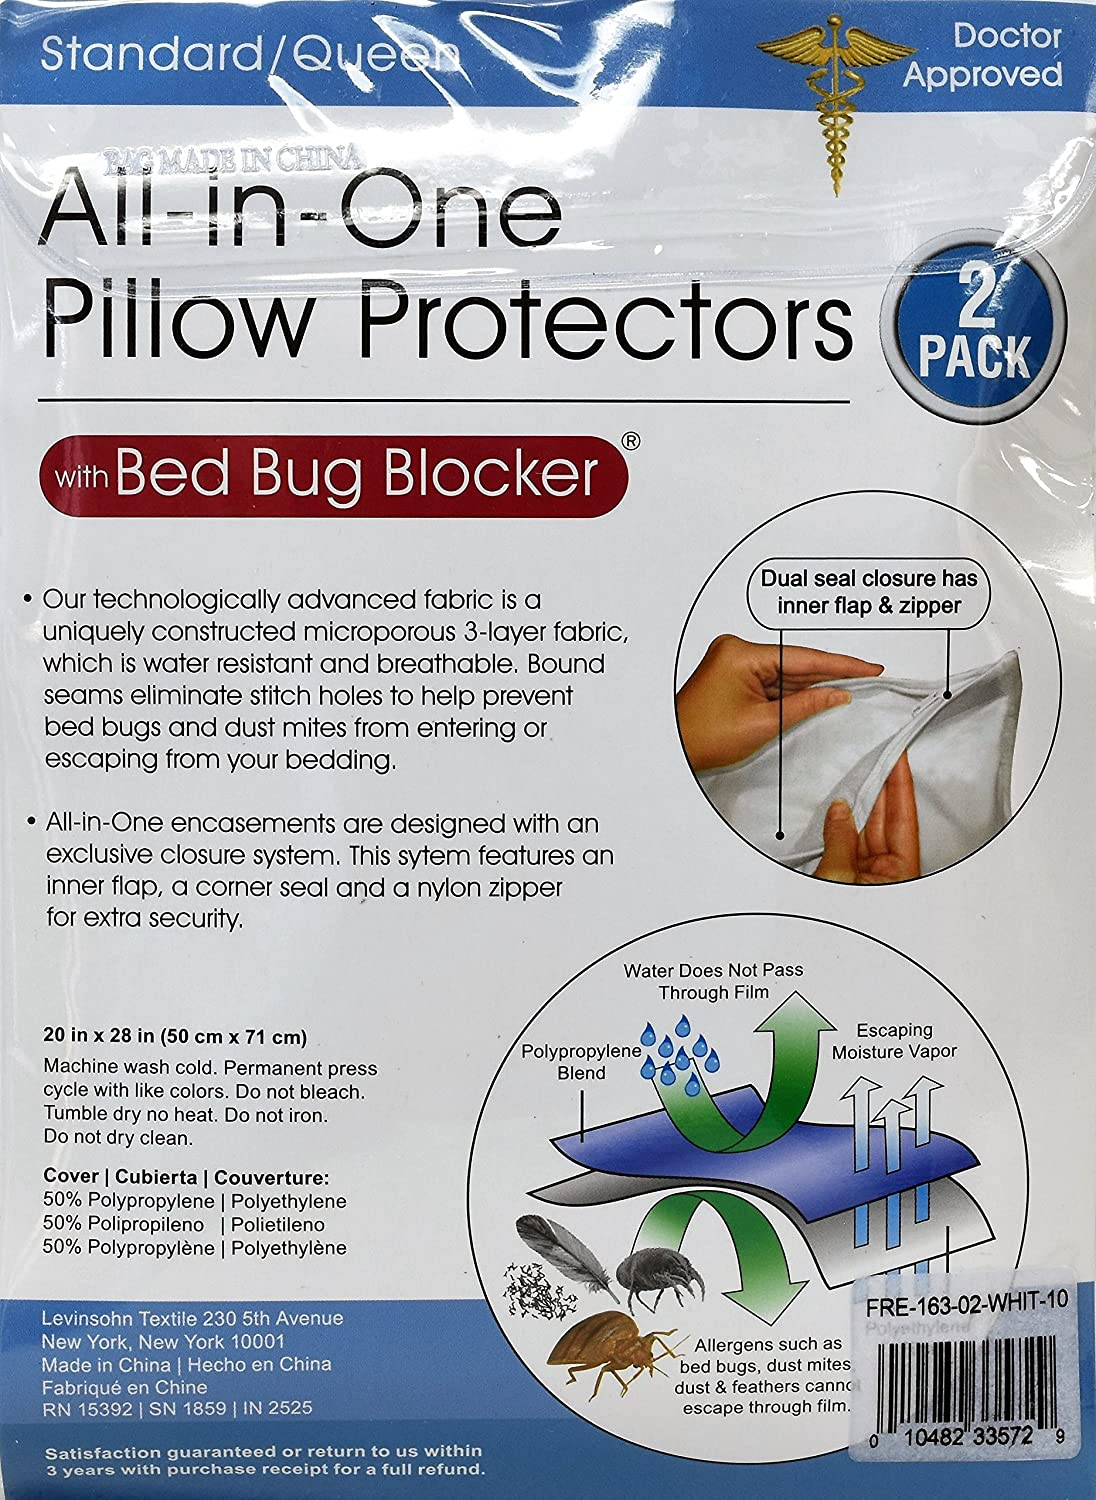 amazon com pillow saver all in one pillow protectors with bed bug